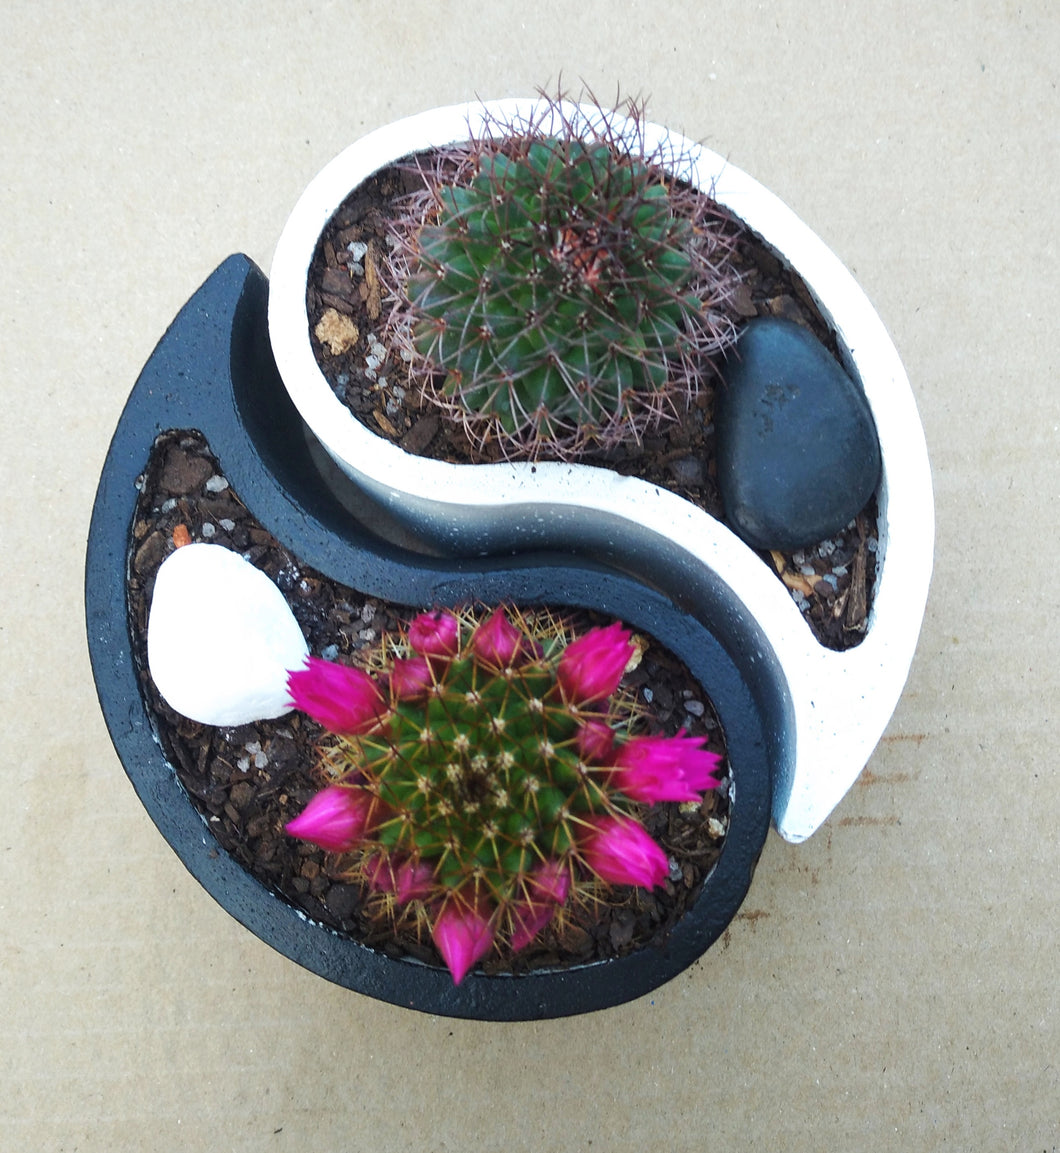 Yin Yang Pots with Cactus (Set of 2)